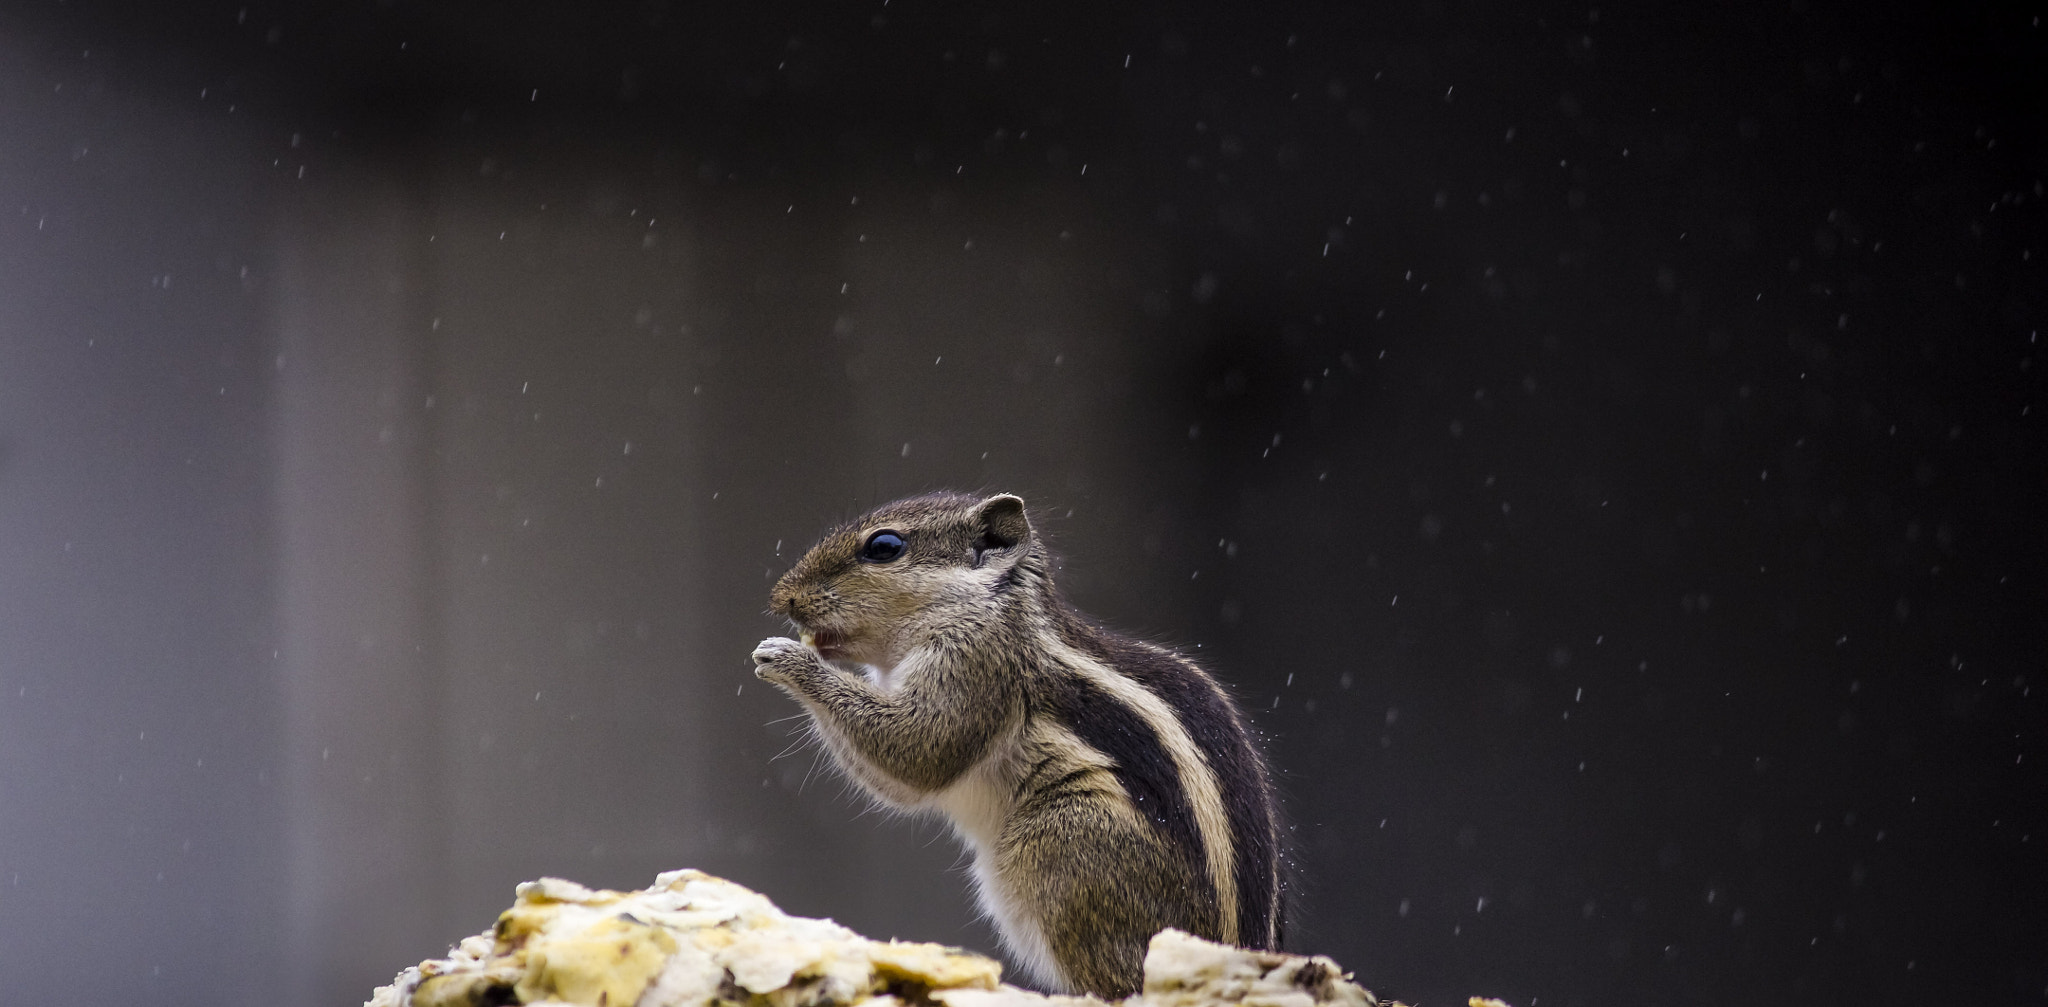 Photograph Squirrel in Rain by Akshay Khare on 500px